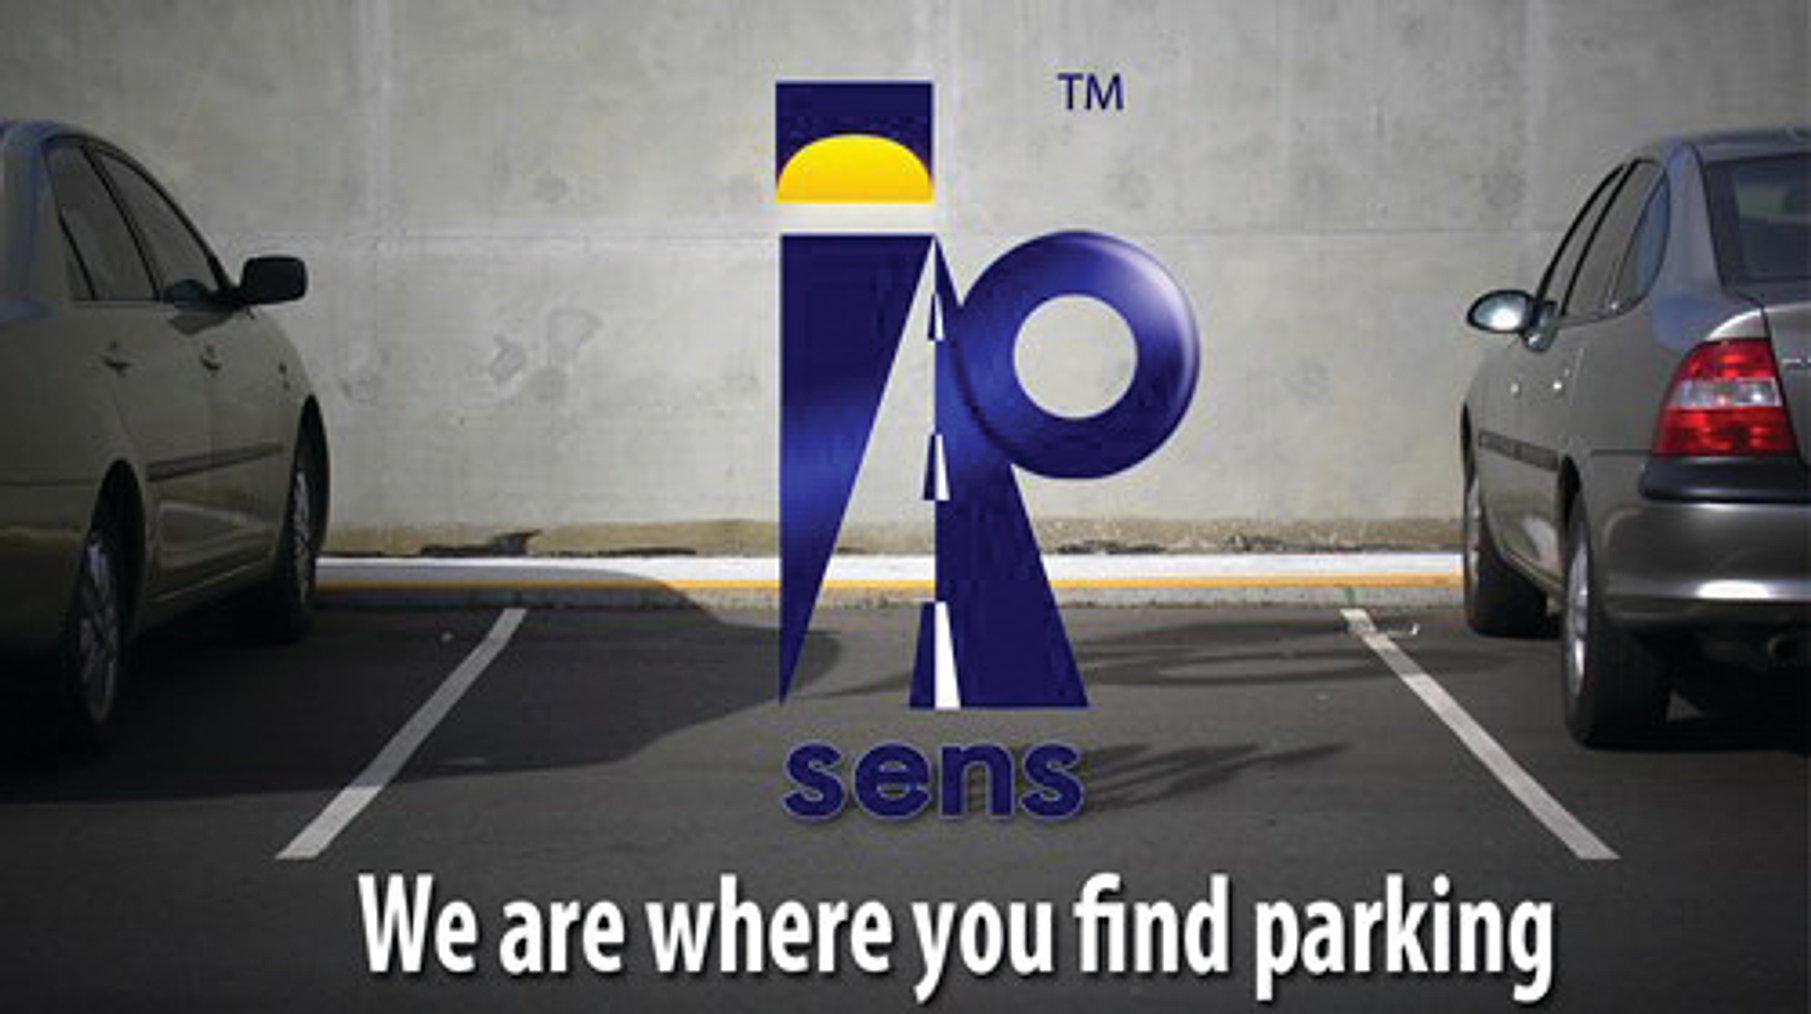 Parking Guidance Systems Avpm